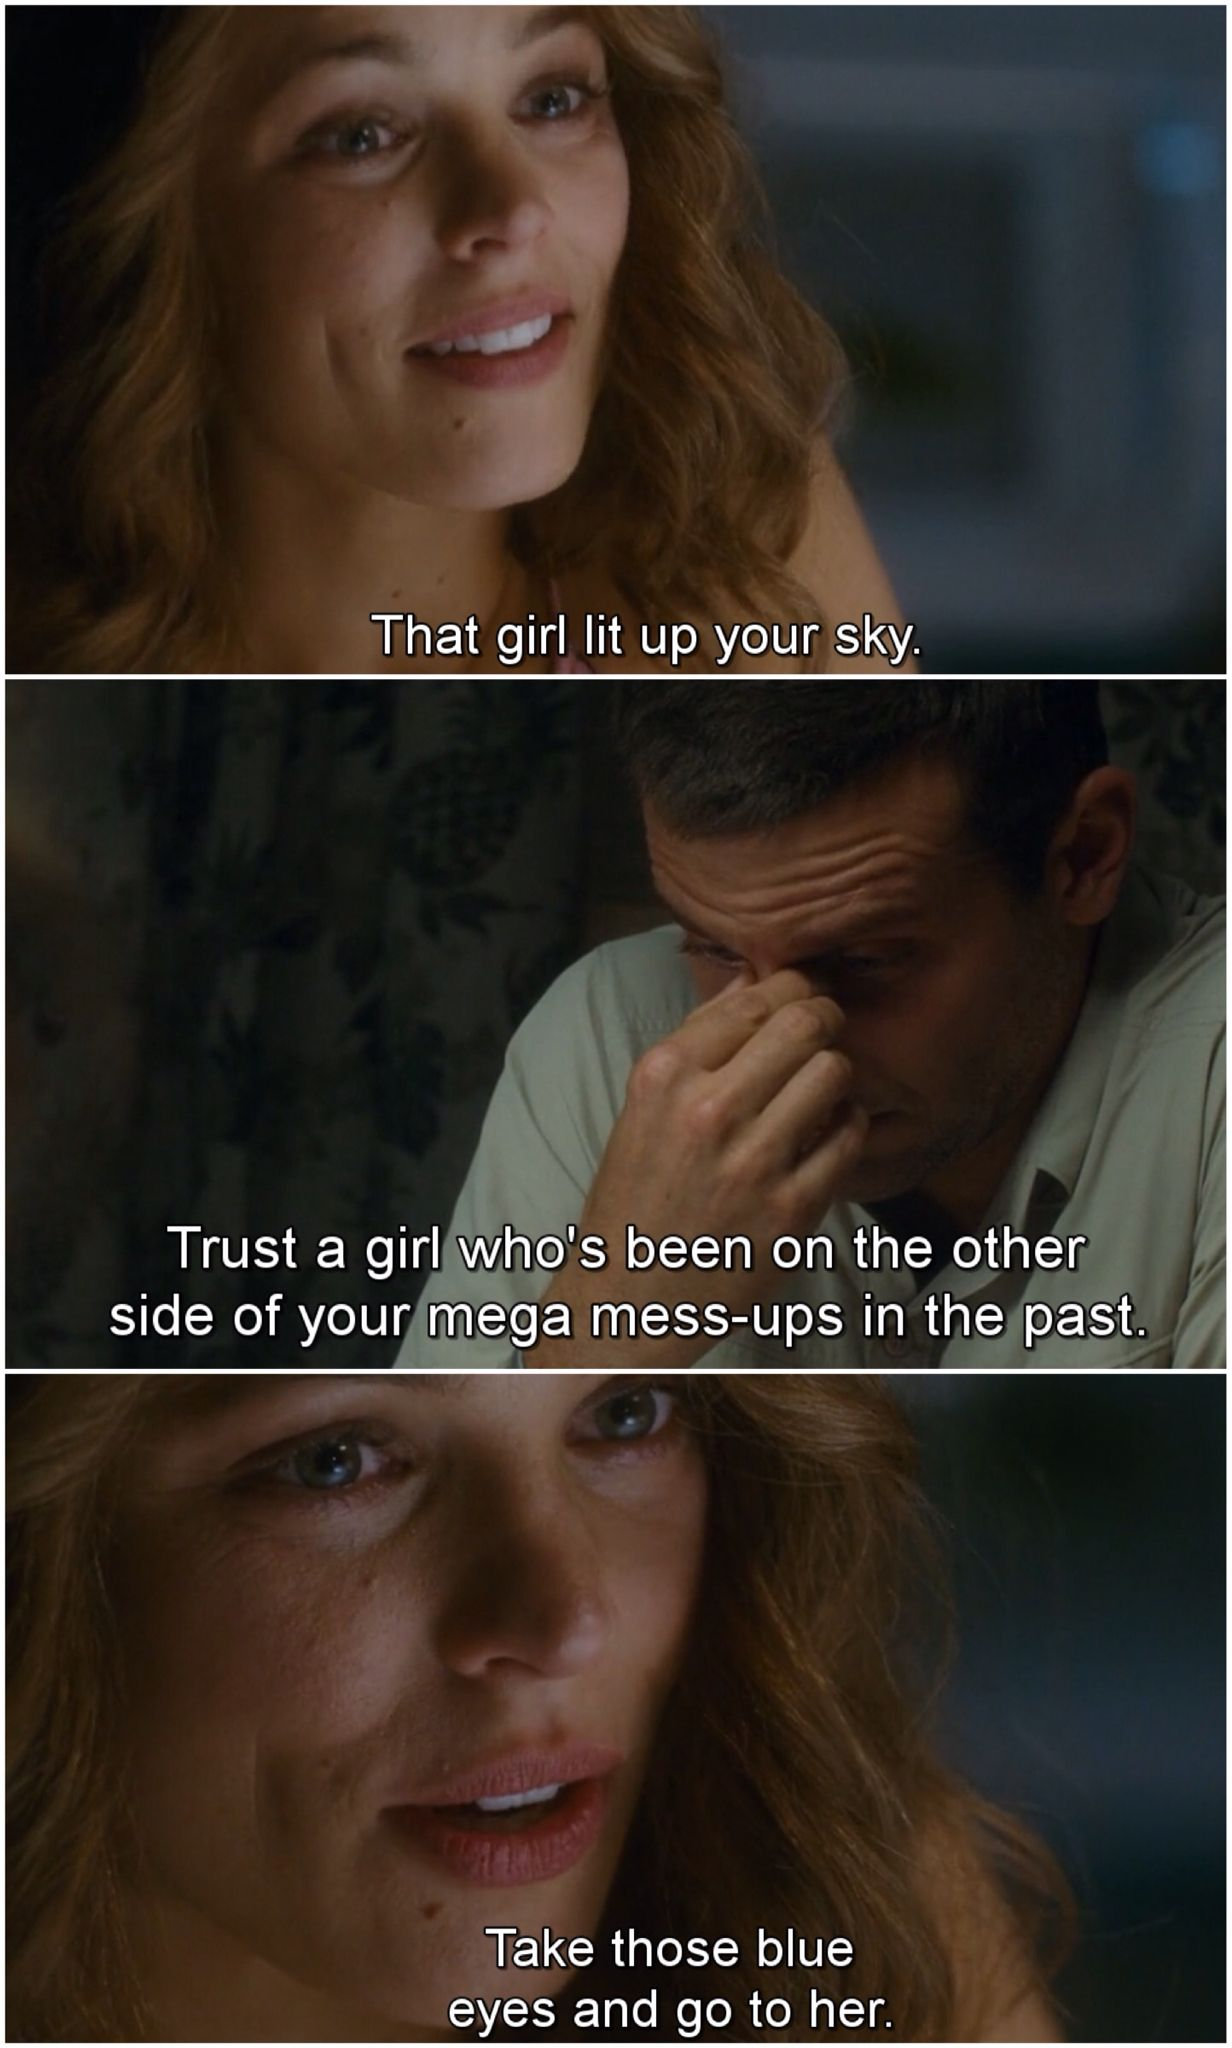 I Feel Like This Is What I Ll Be Saying To My Best Friend Ex Someday When He Falls In Love Again Man He Messed Up Movie Quotes Favorite Movie Quotes Tv Quotes